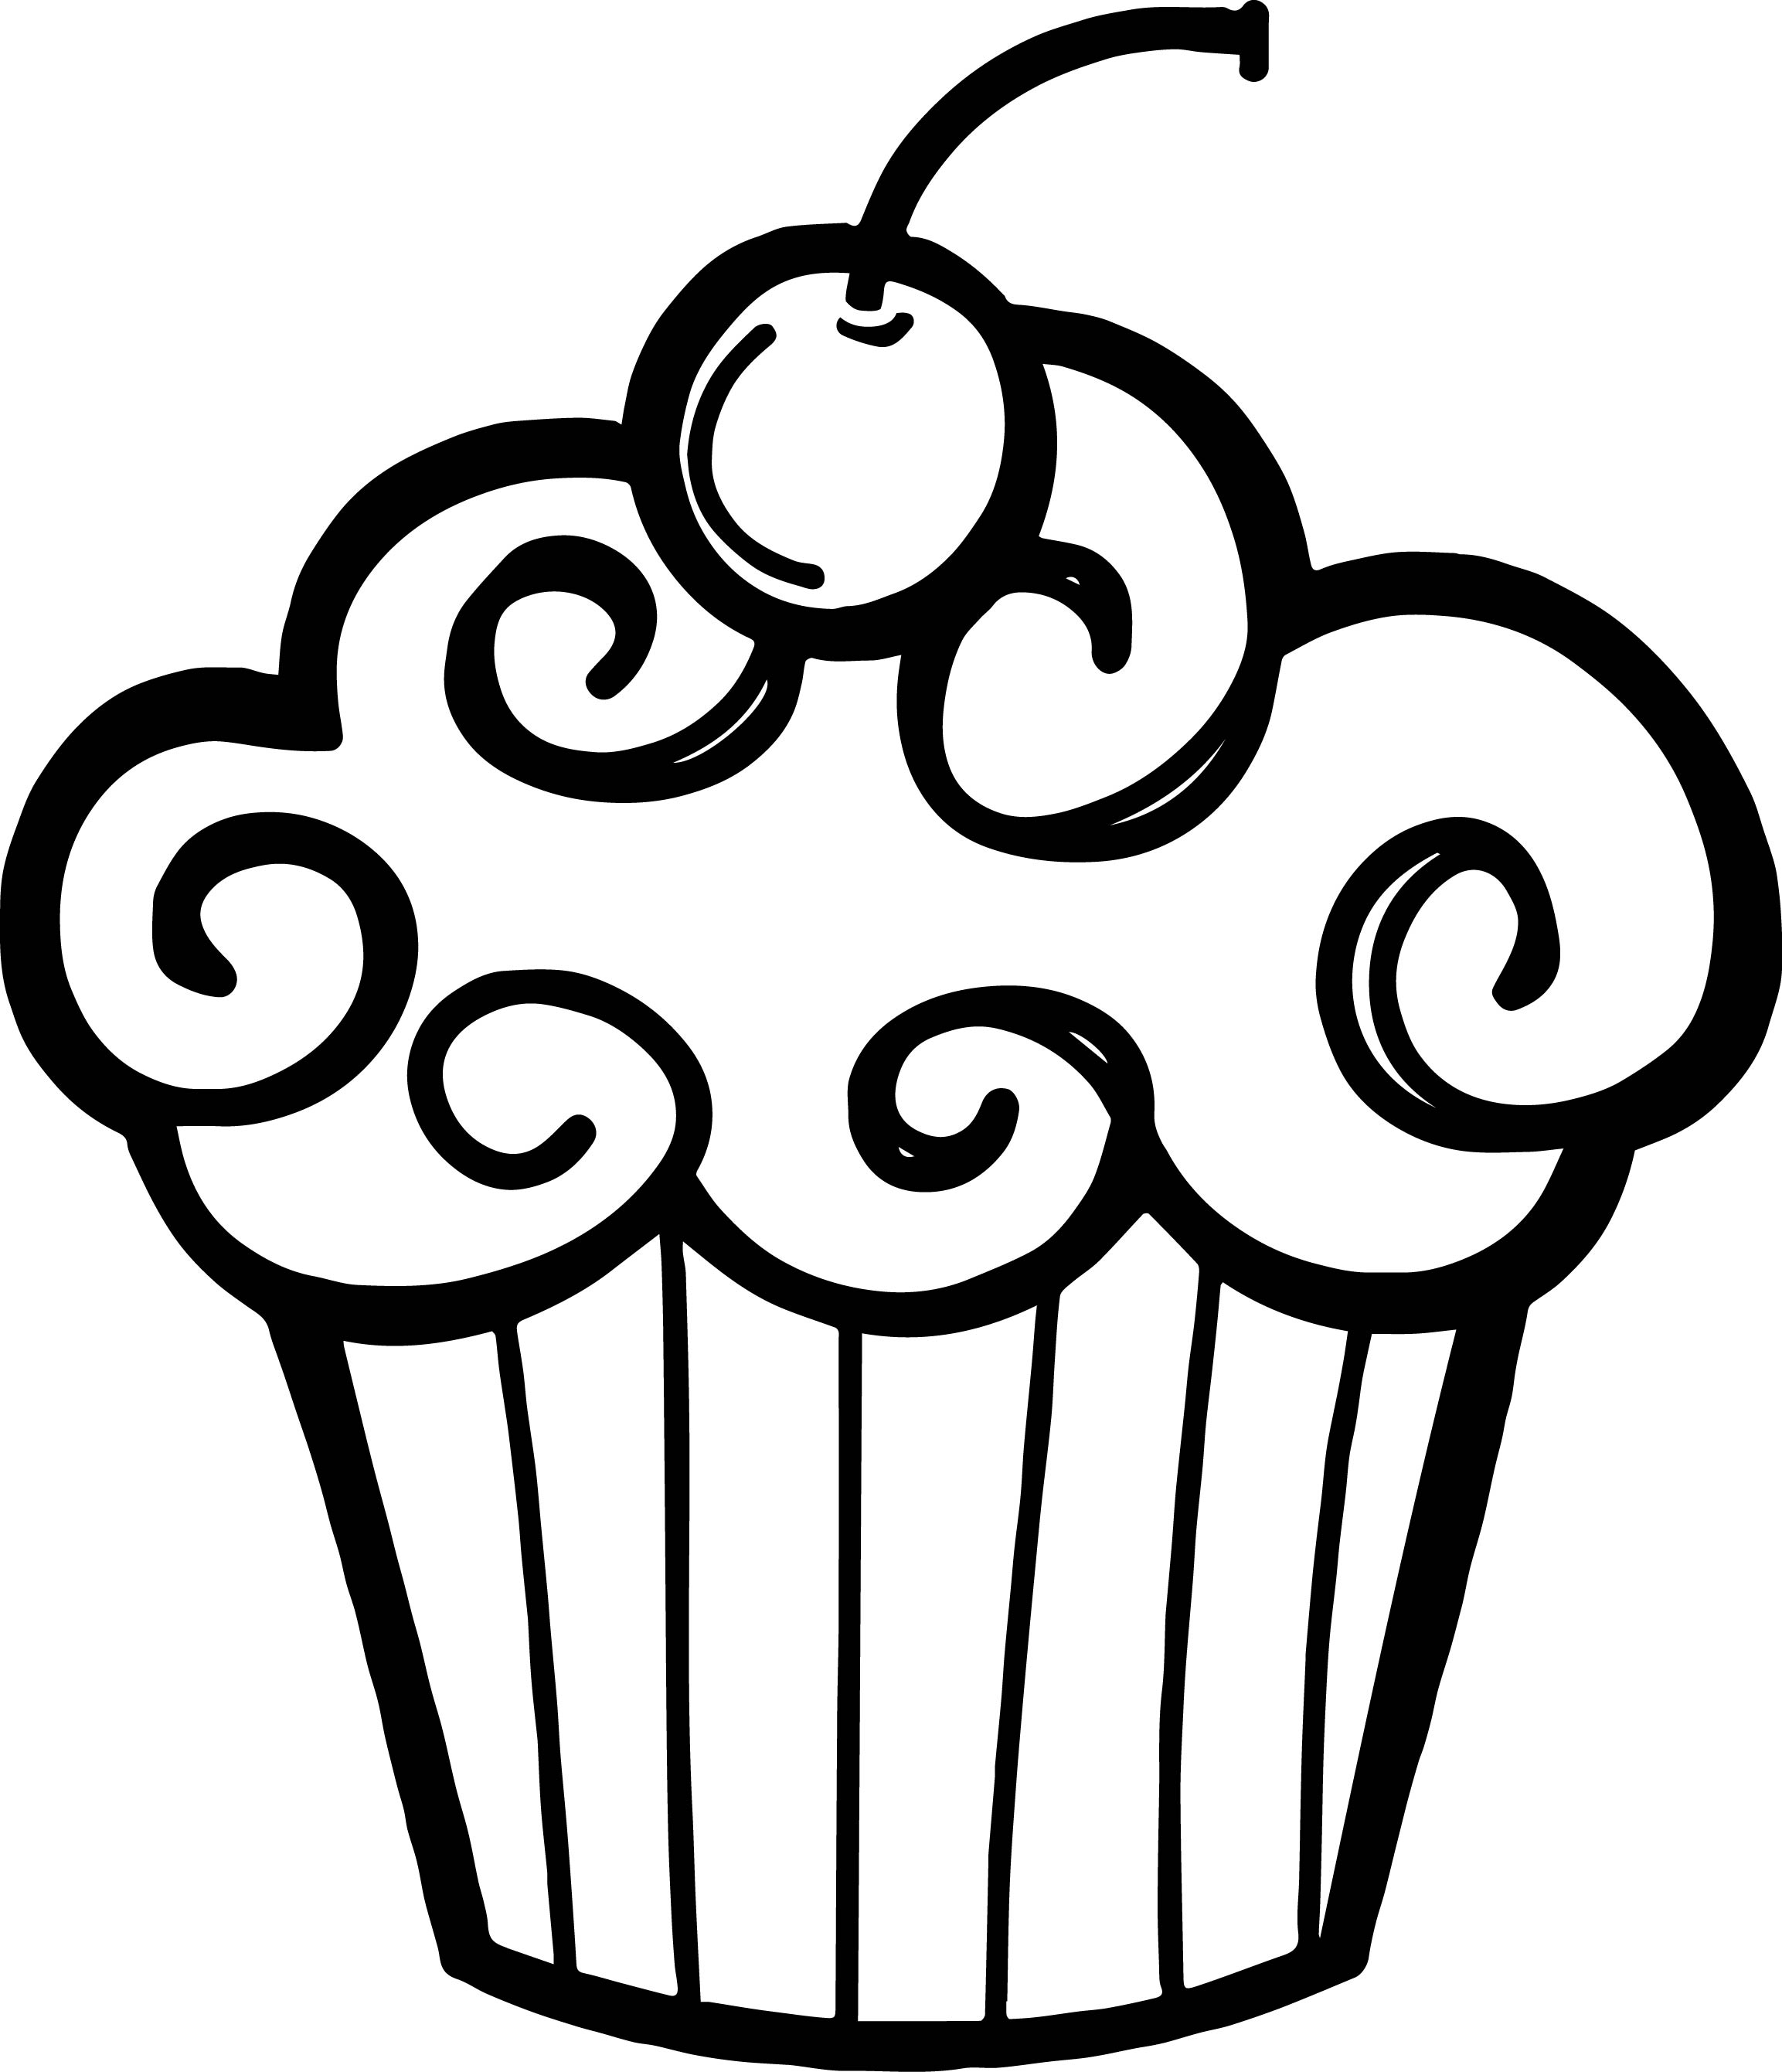 Cupcake clipart free black and white svg freeuse library Birthday black and white birthday clipart black and white craft ... svg freeuse library